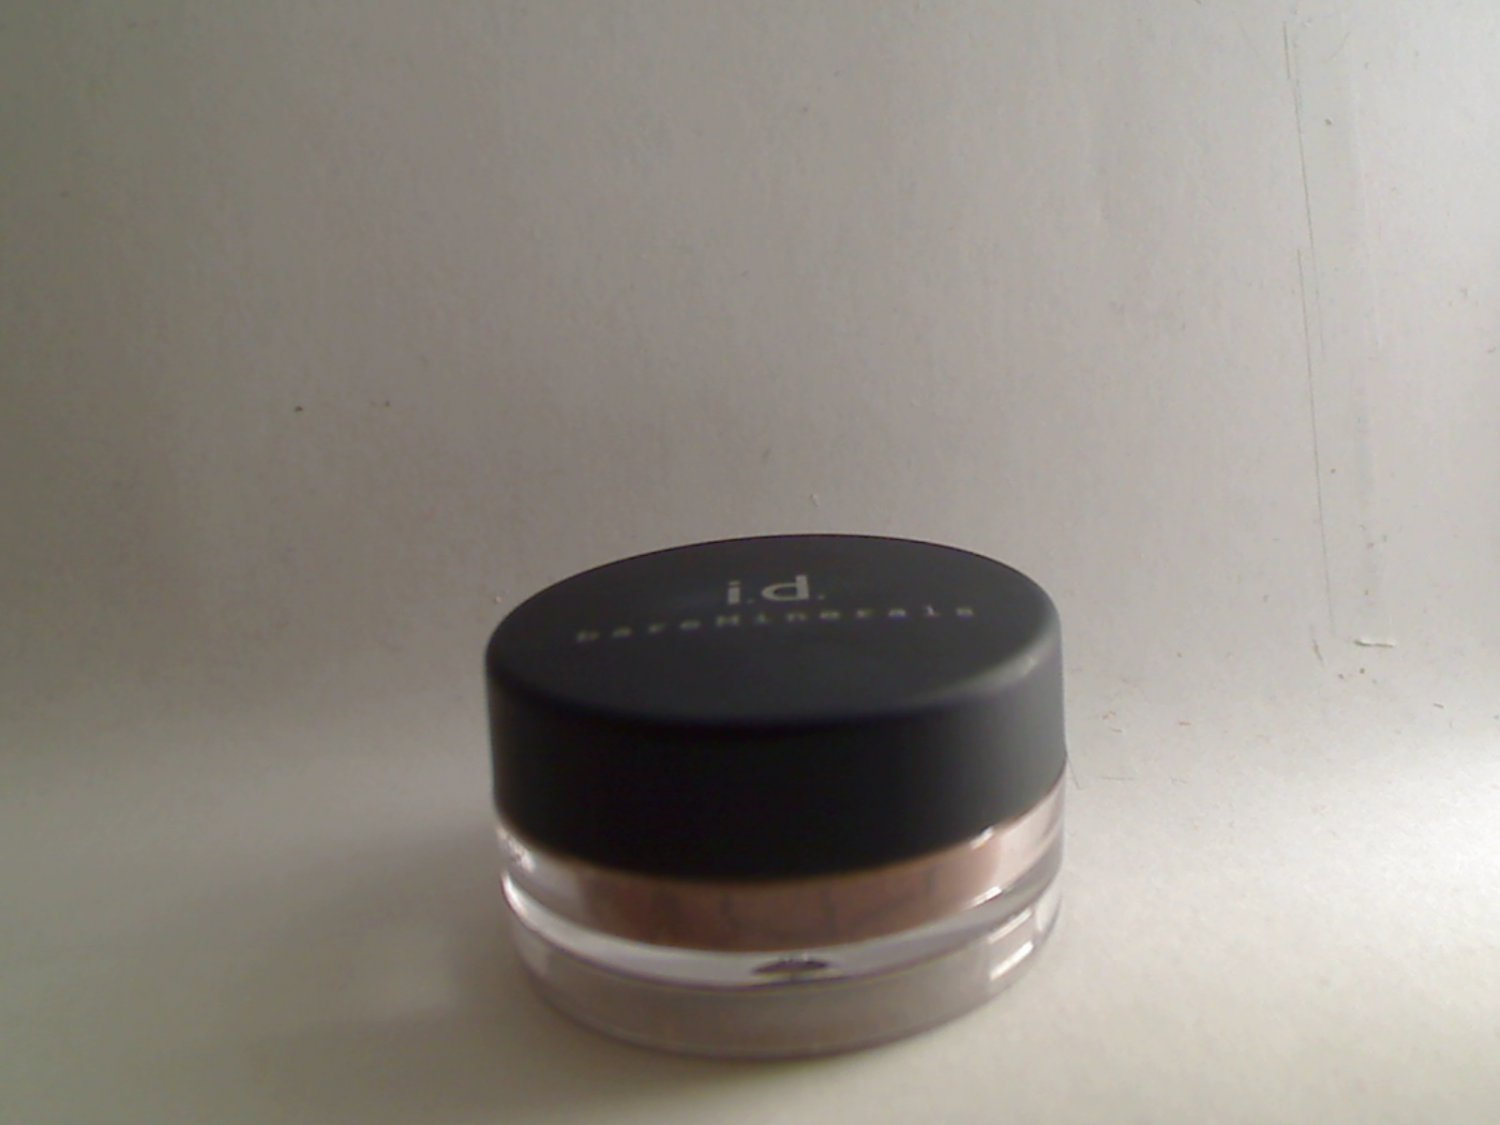 Bare Escentuals bareMinerals i.d. Eyeshadow Eyecolor Minerals Eye Shadow Pure Spice discontinued